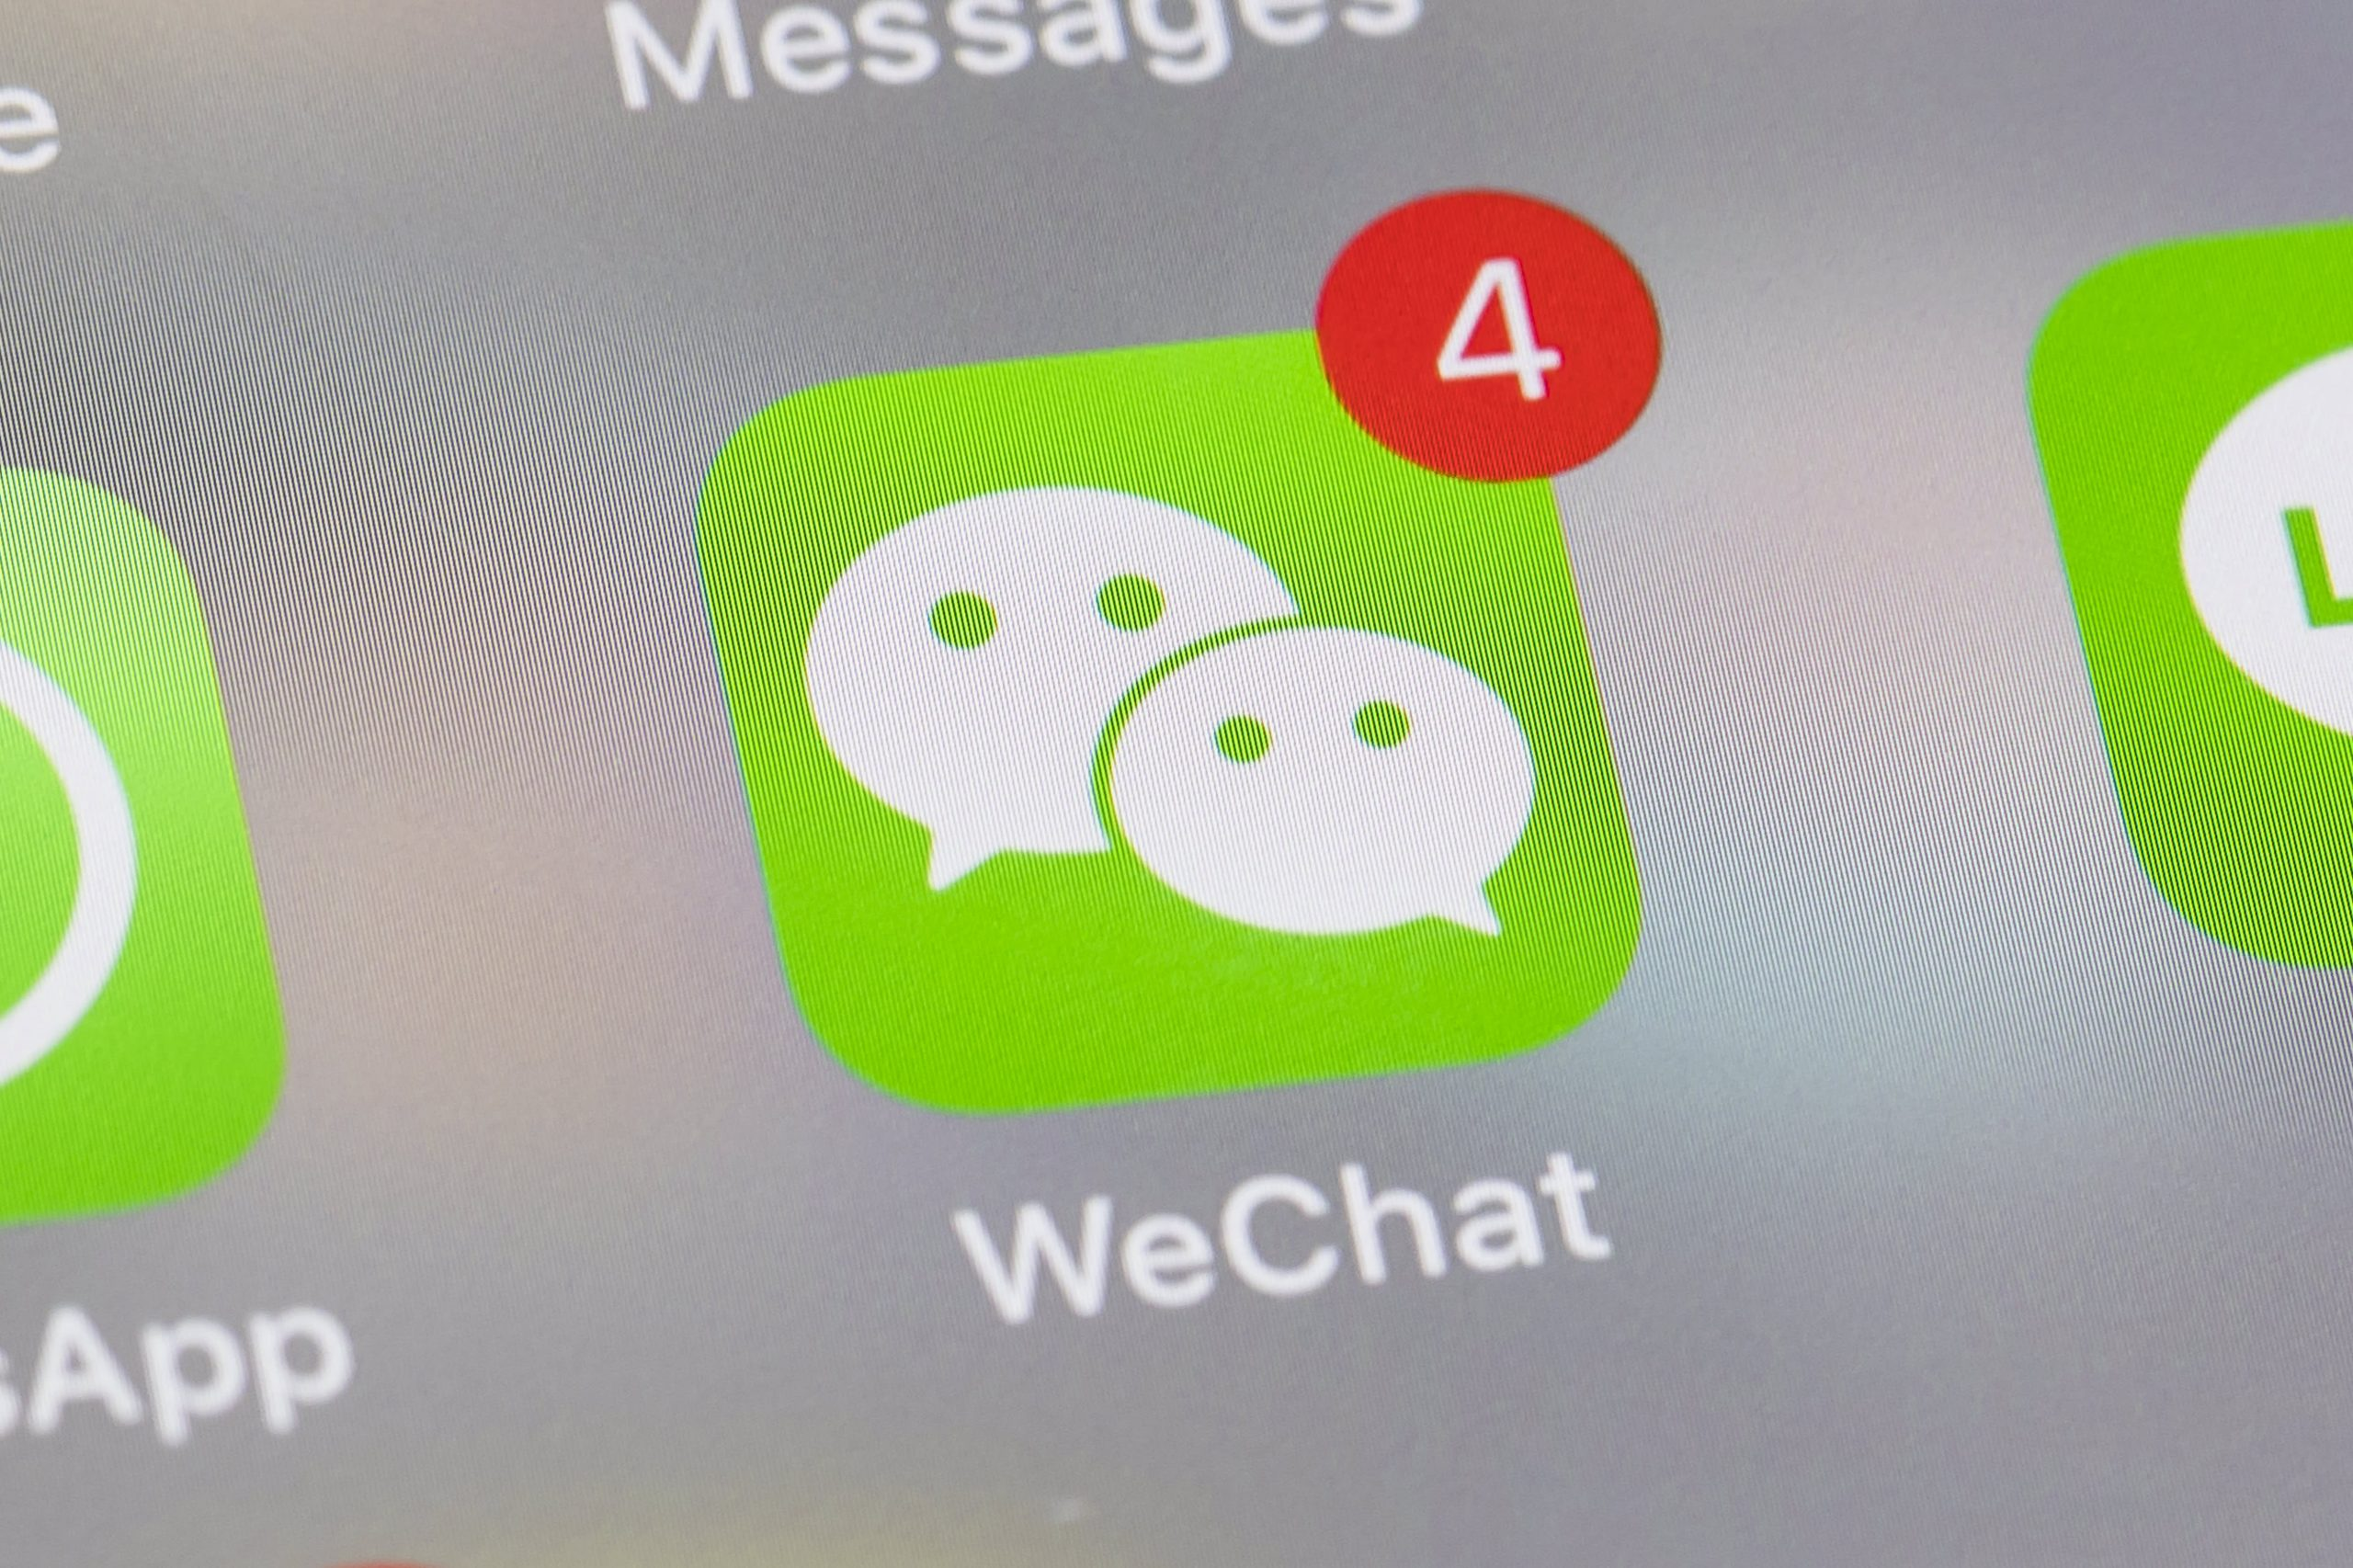 Tencent bans nose picking, spanking and other 'violations' on its WeChat livestreaming service